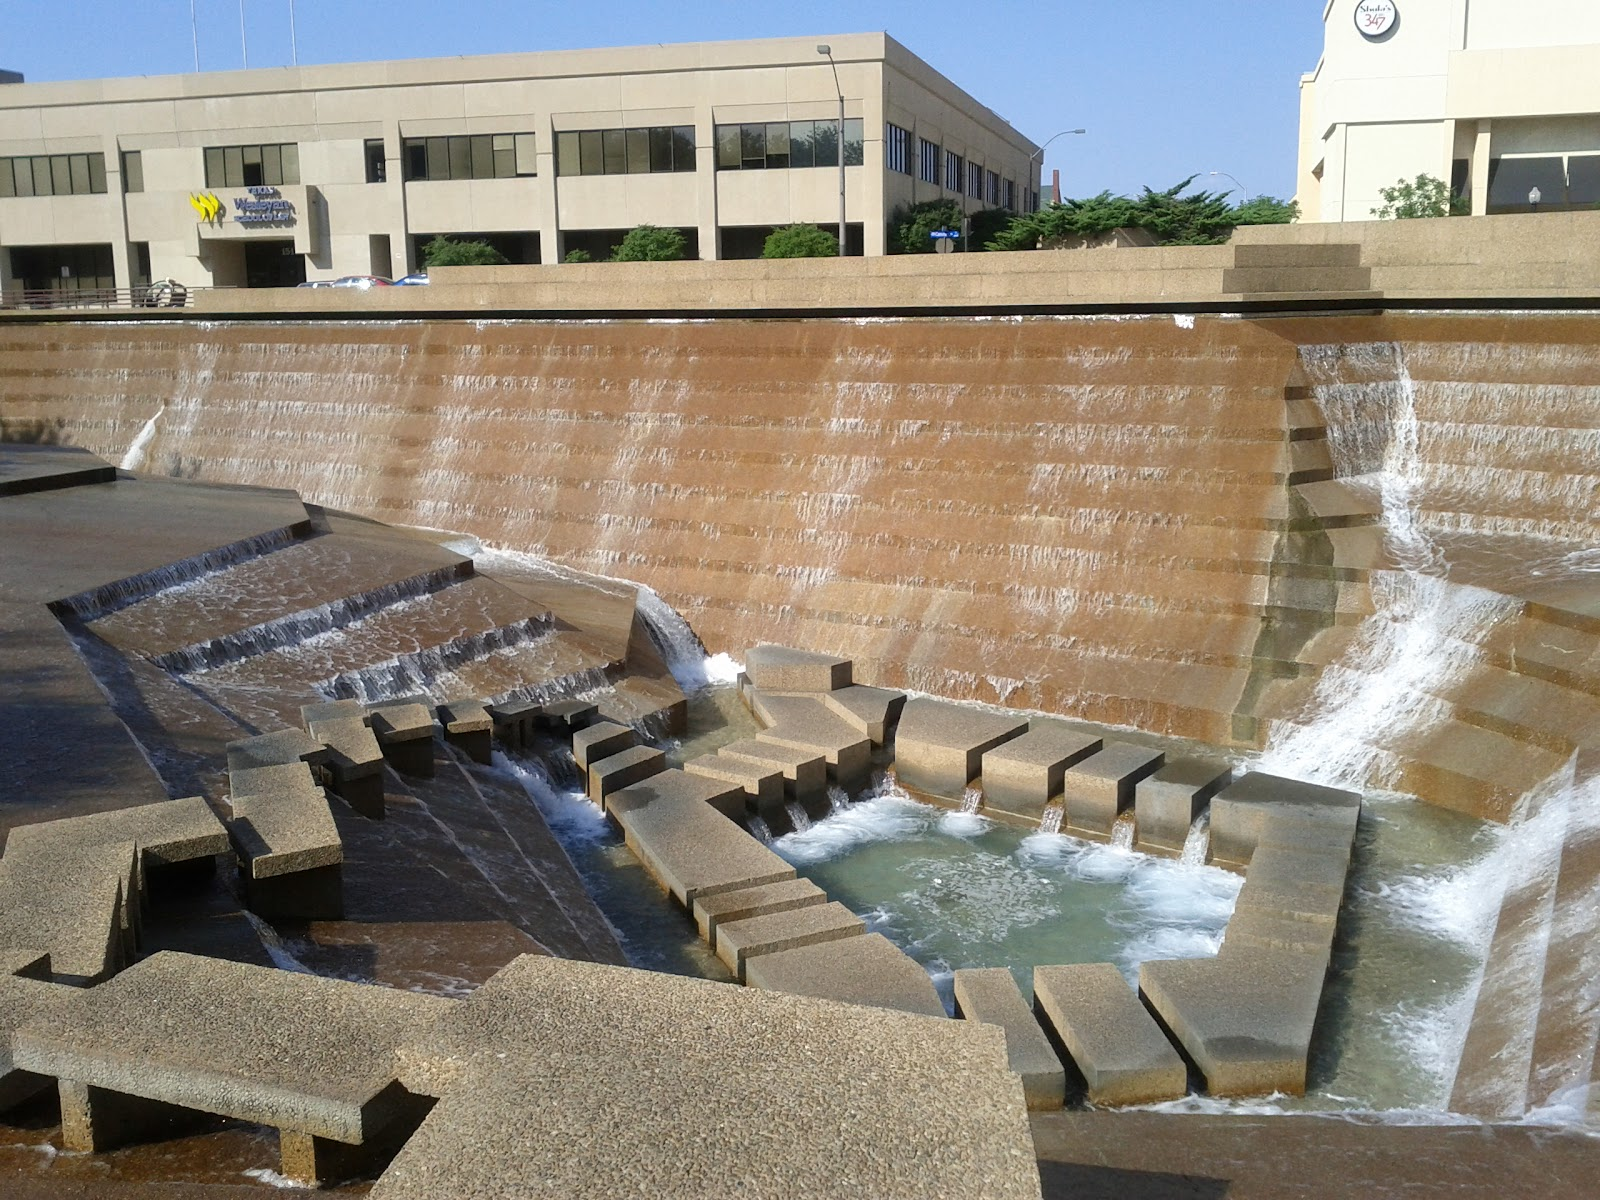 Dallas Fort Worth vacation - IMG_20110611_172854.jpg